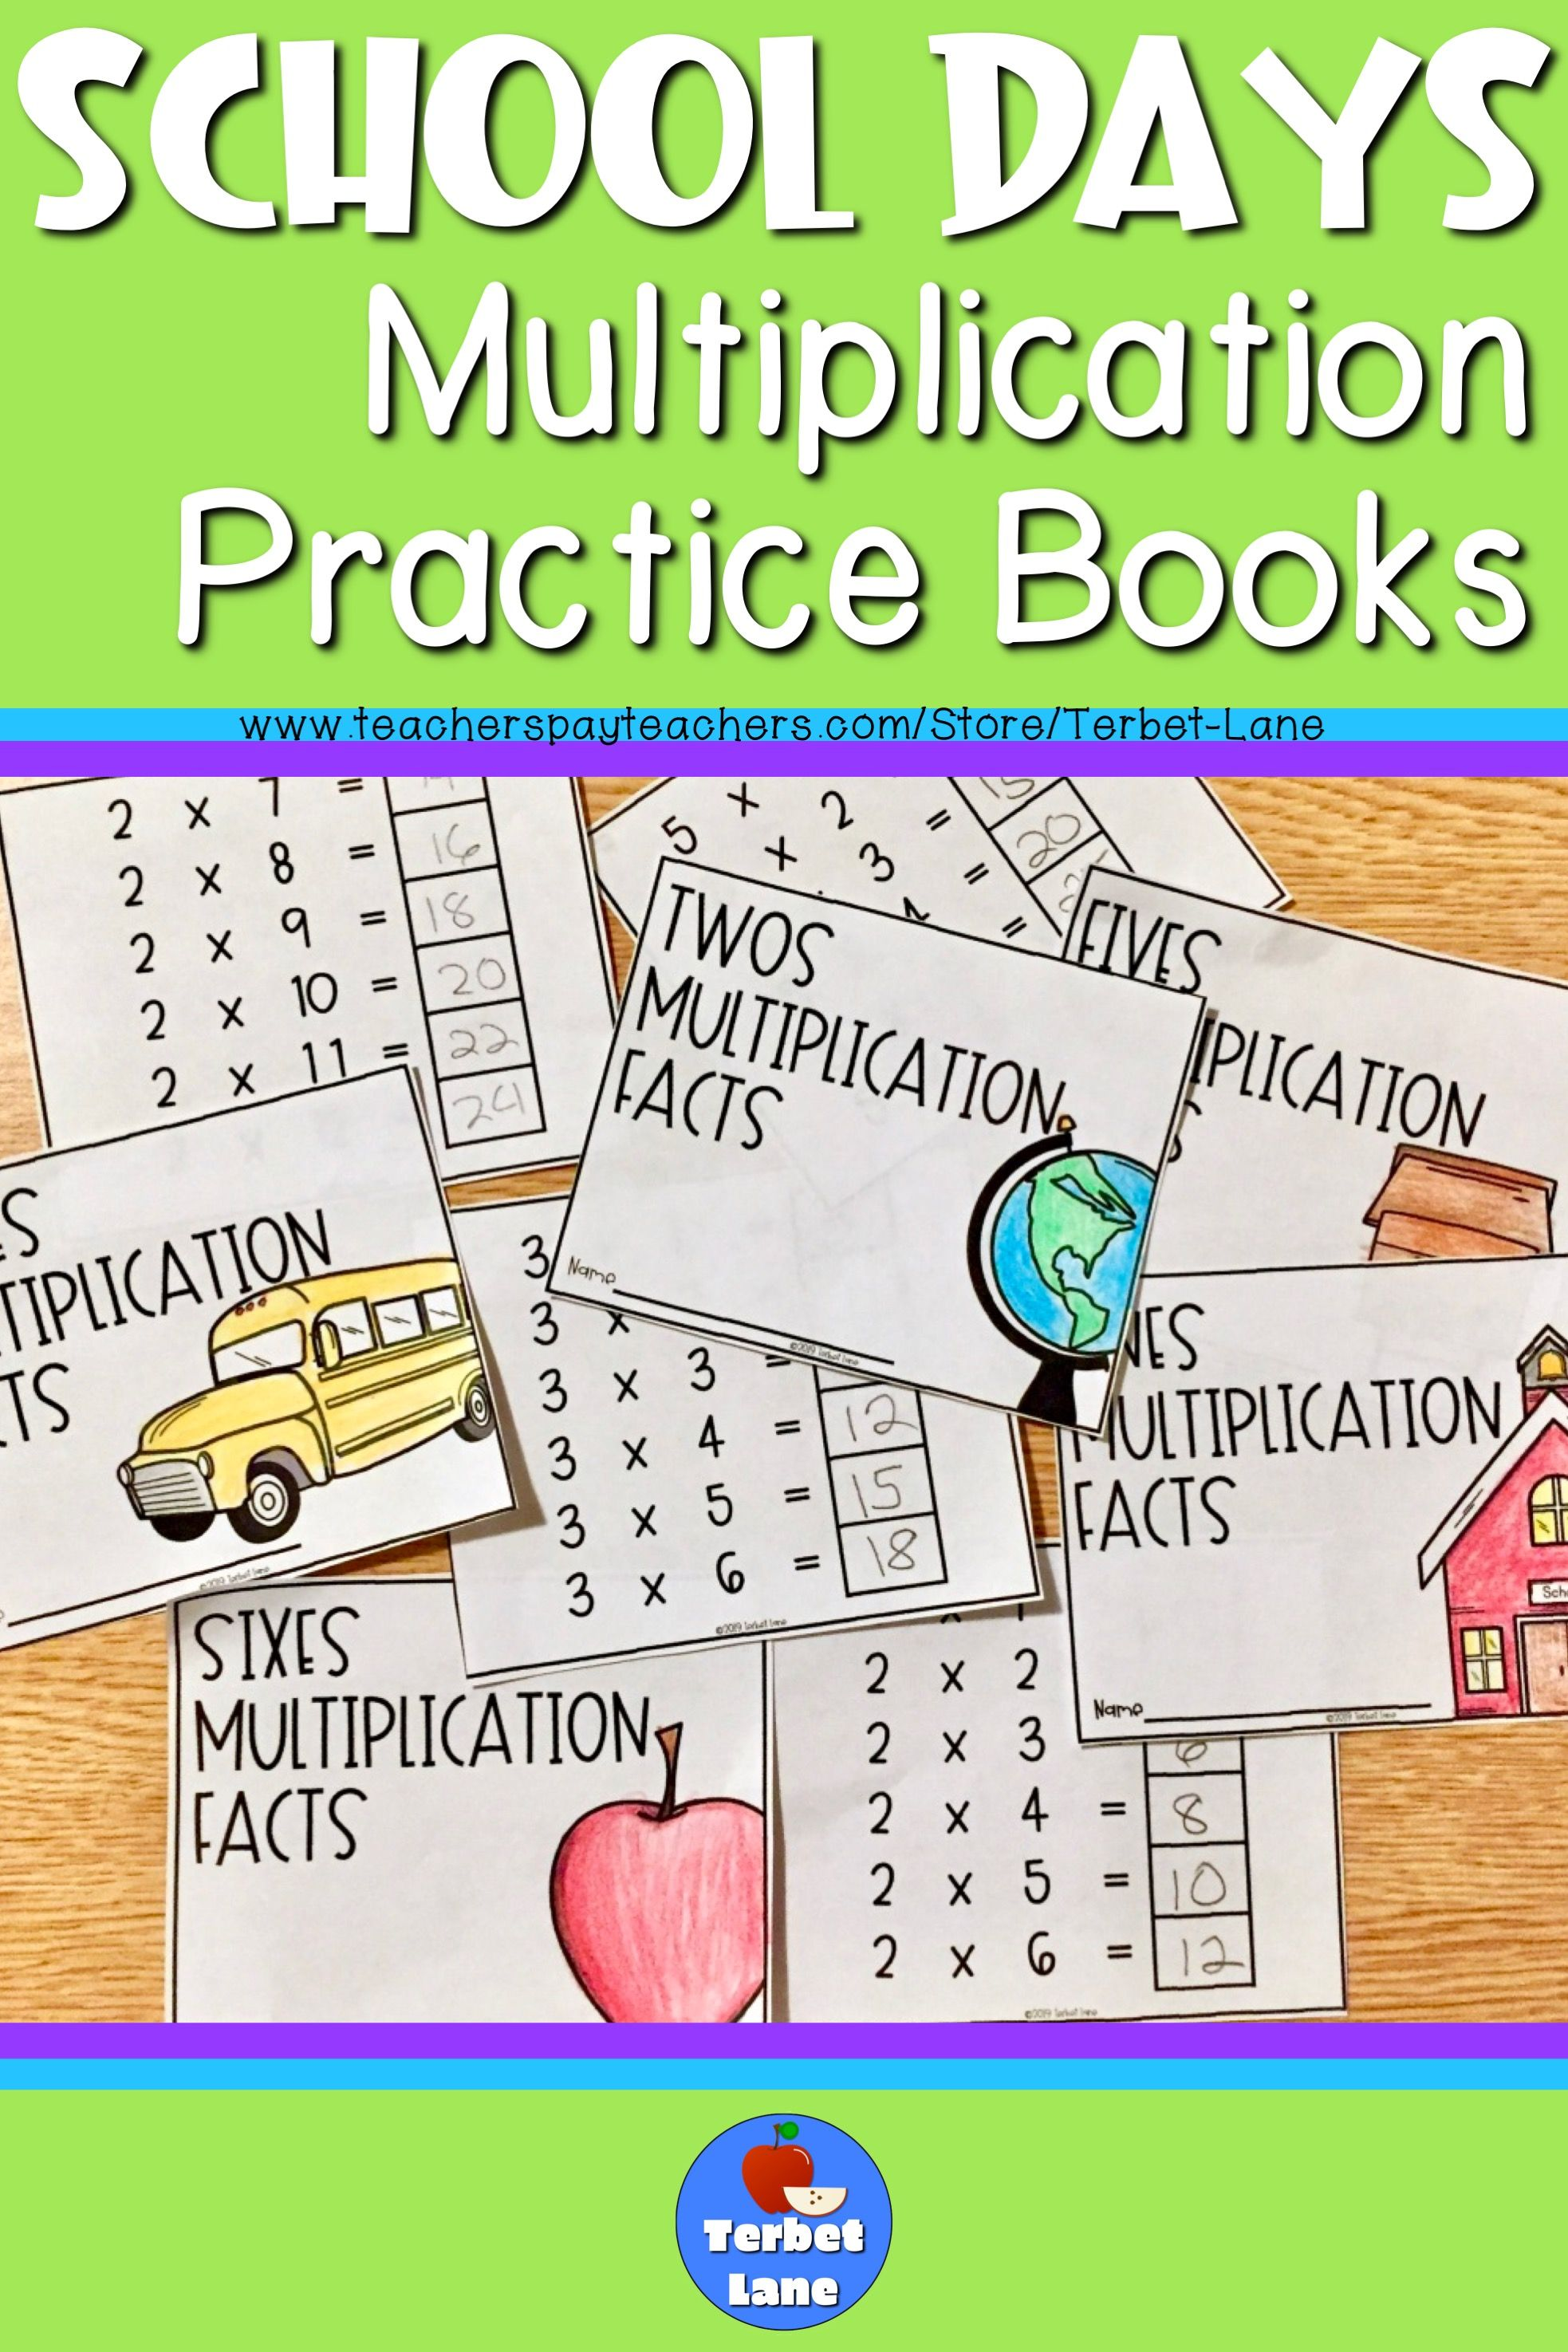 School Days Multiplication Facts Practice Books